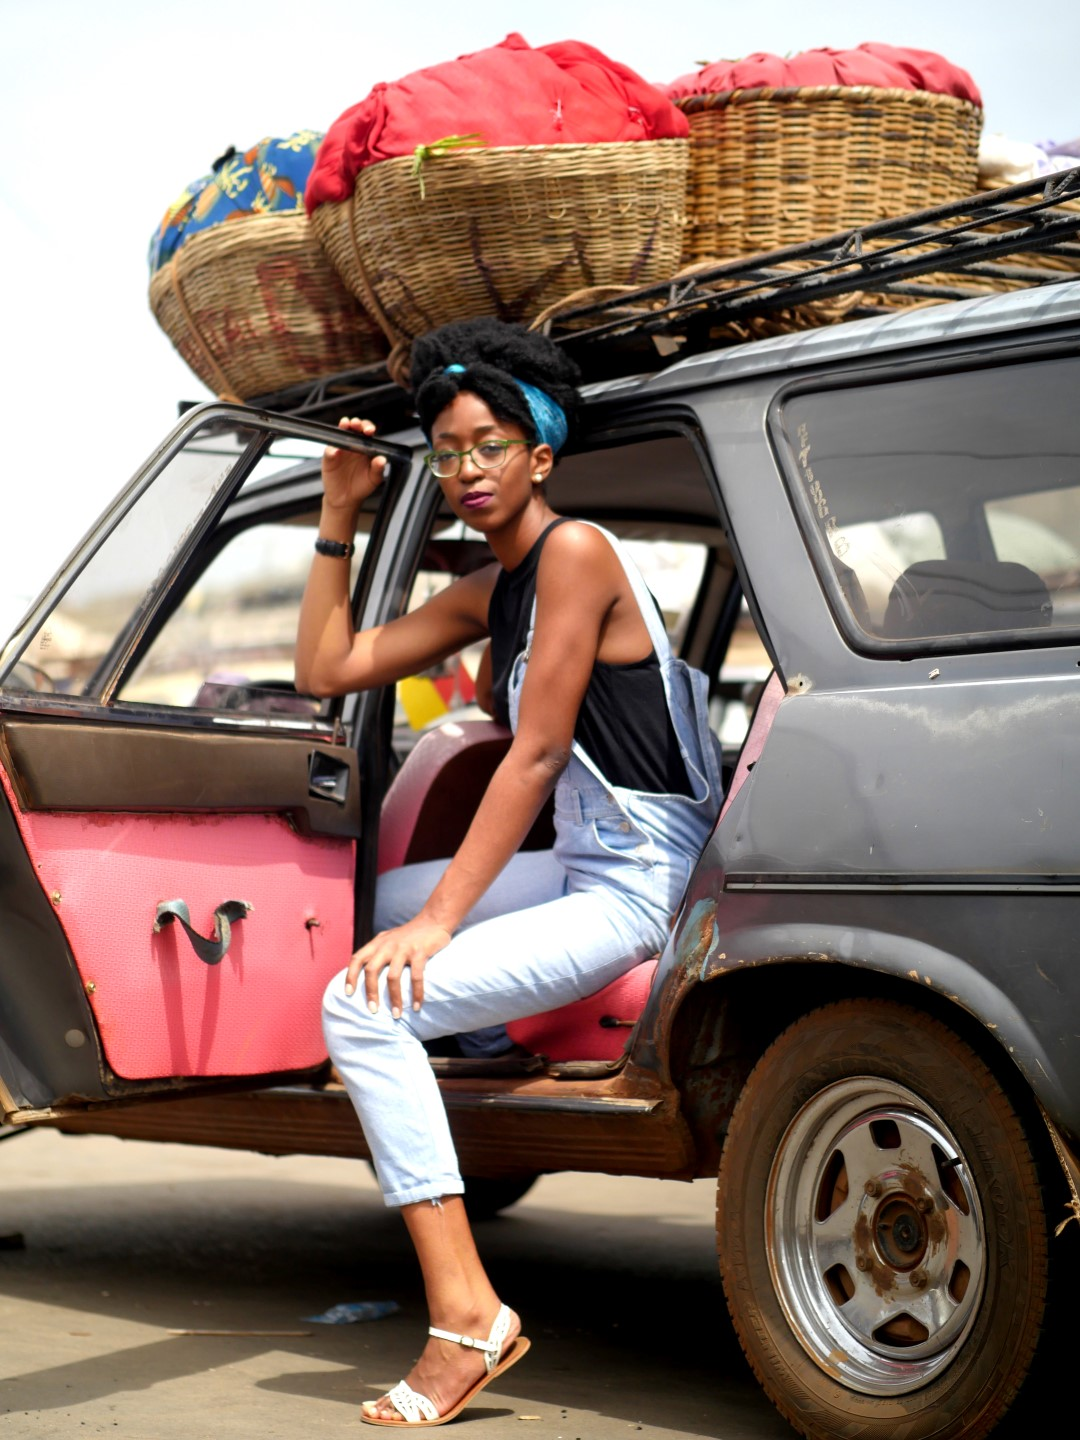 Girl wearing dungarees posing in a cab in tokpa market, cotonou